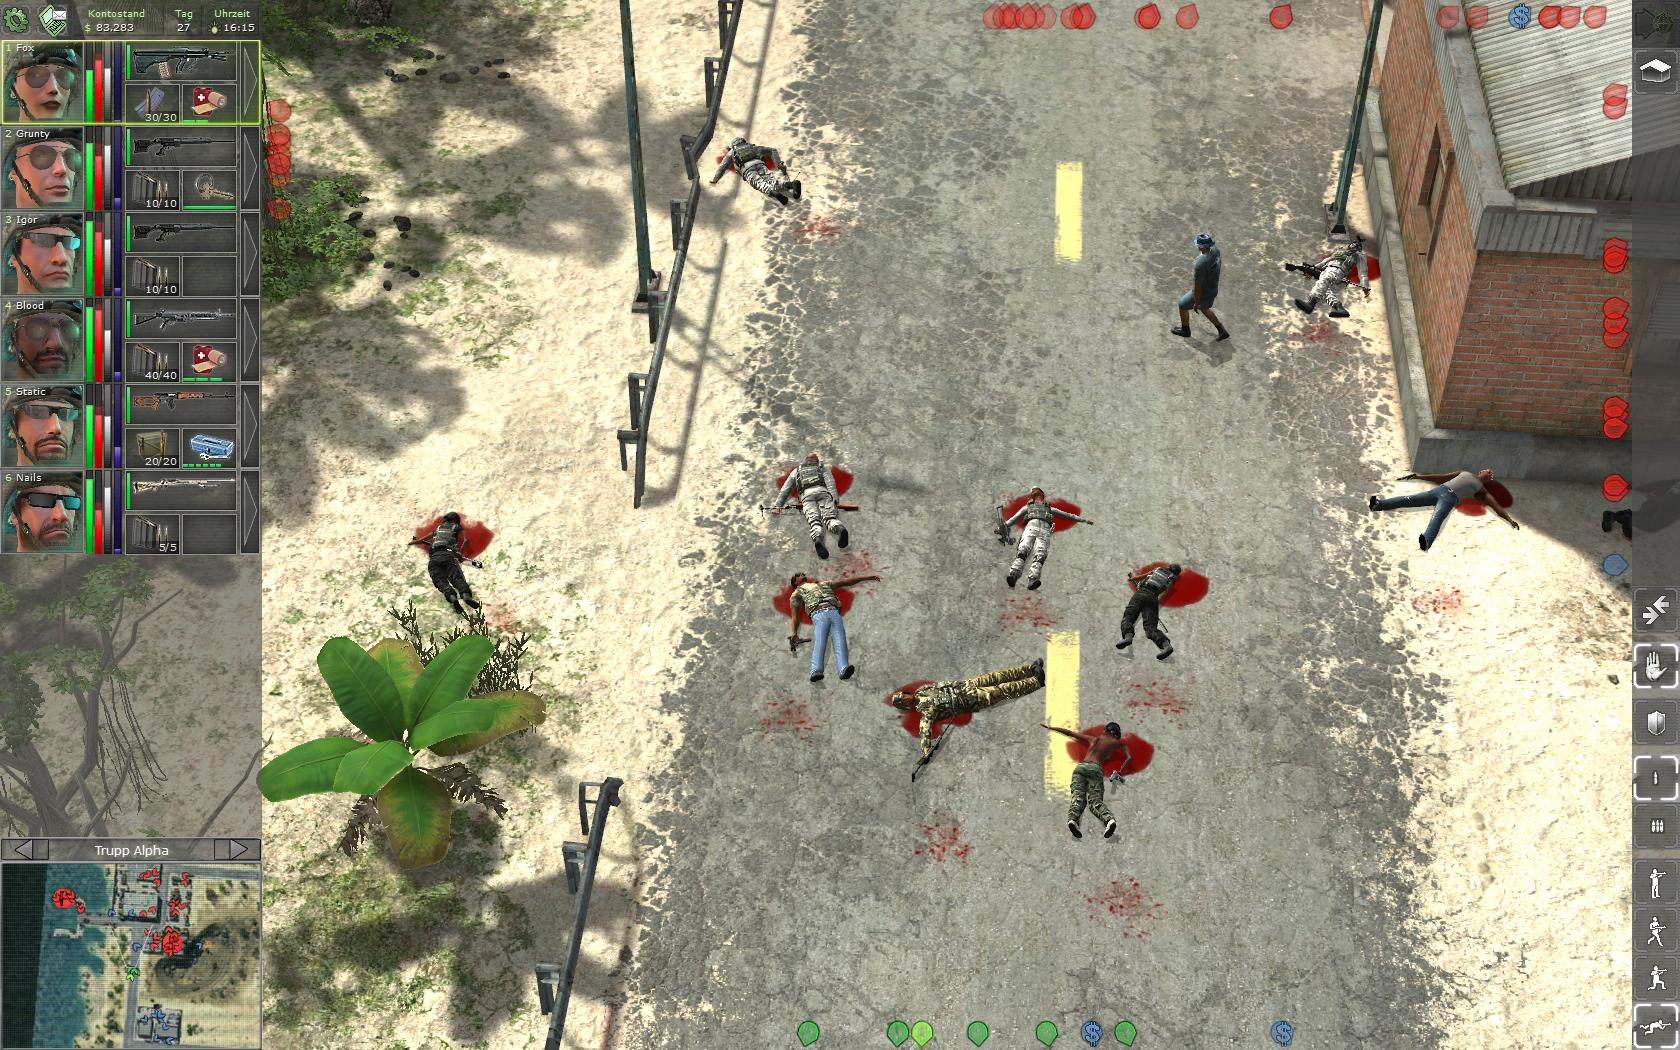 Famas changes image - realistic rebalancing mod for jagged alliance: back in action